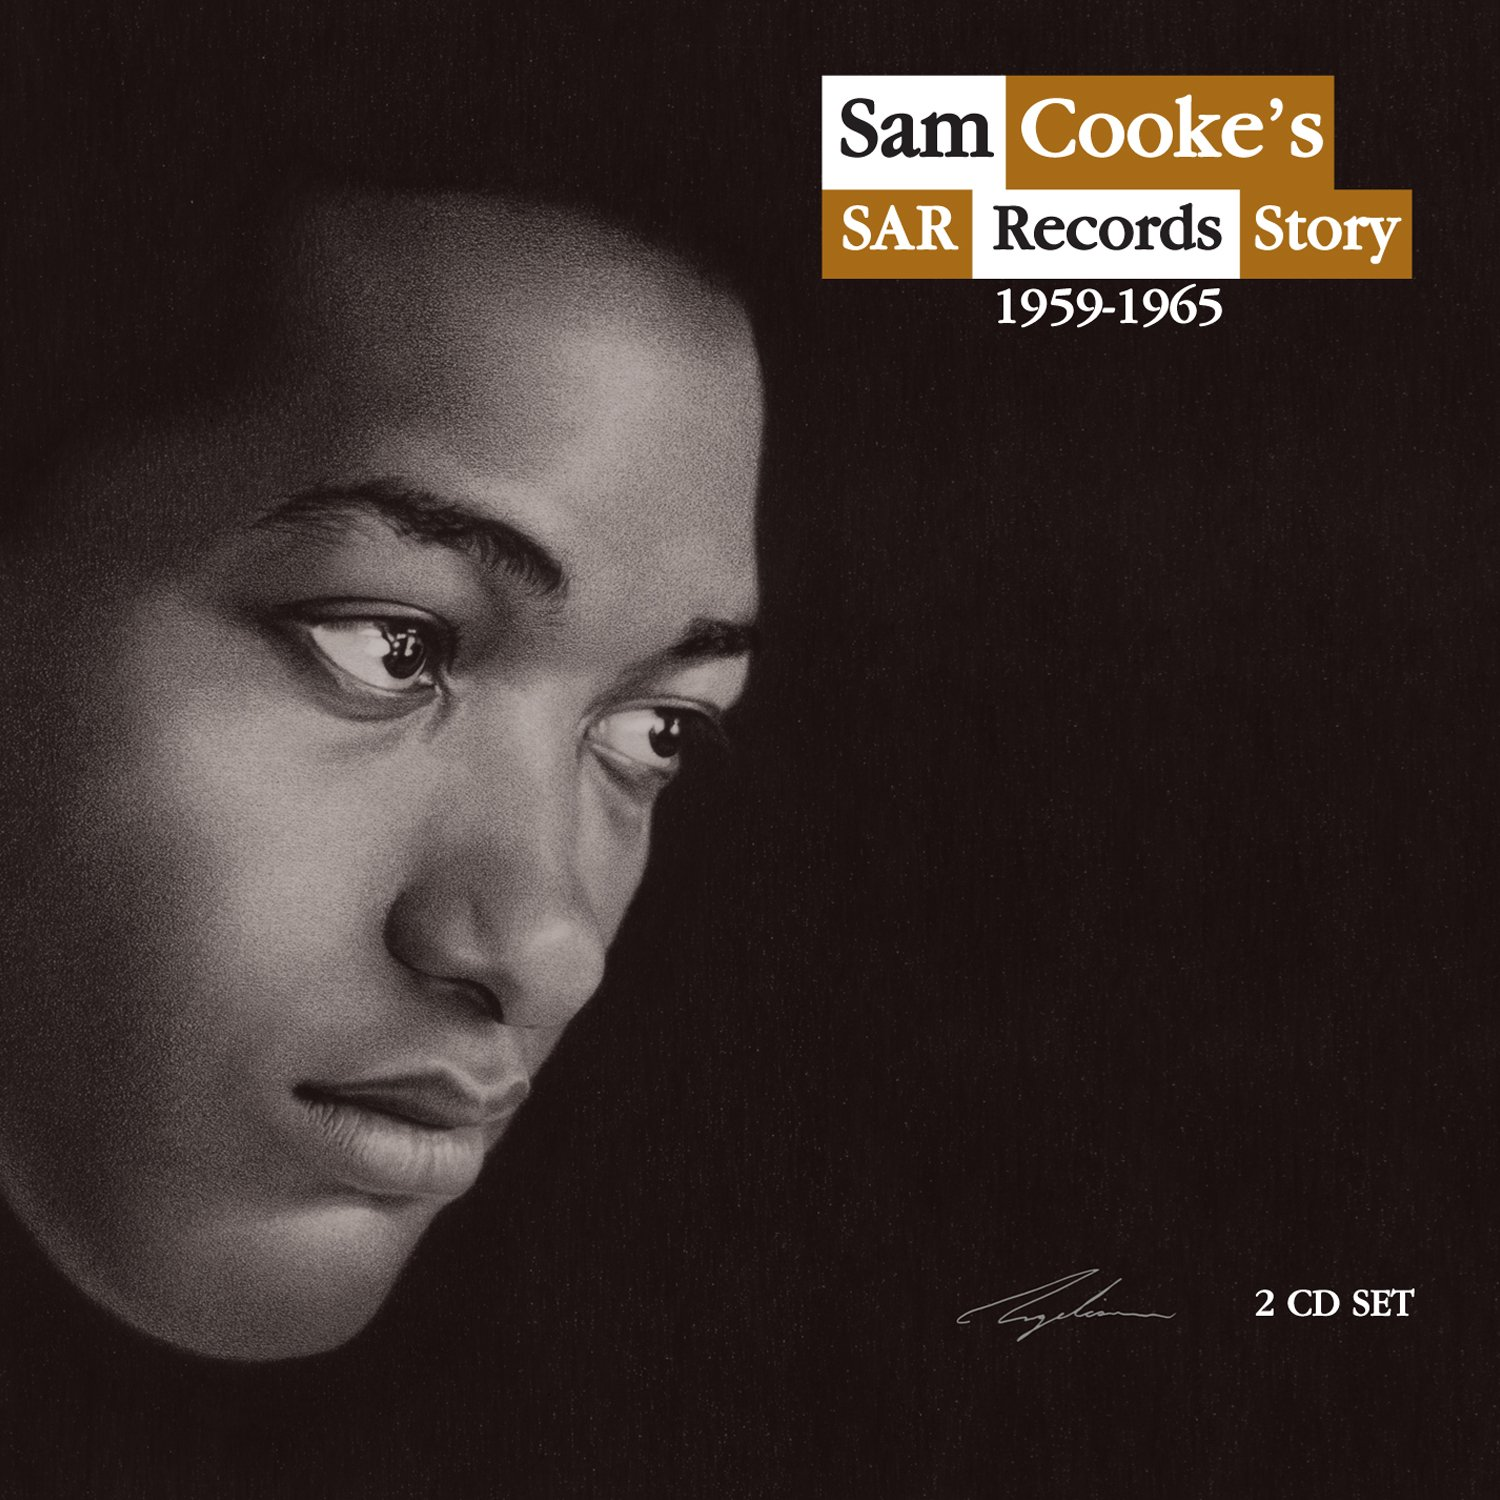 Sam Cooke's Sar Records Story - 2 Pack Jewel Case by ABKCO